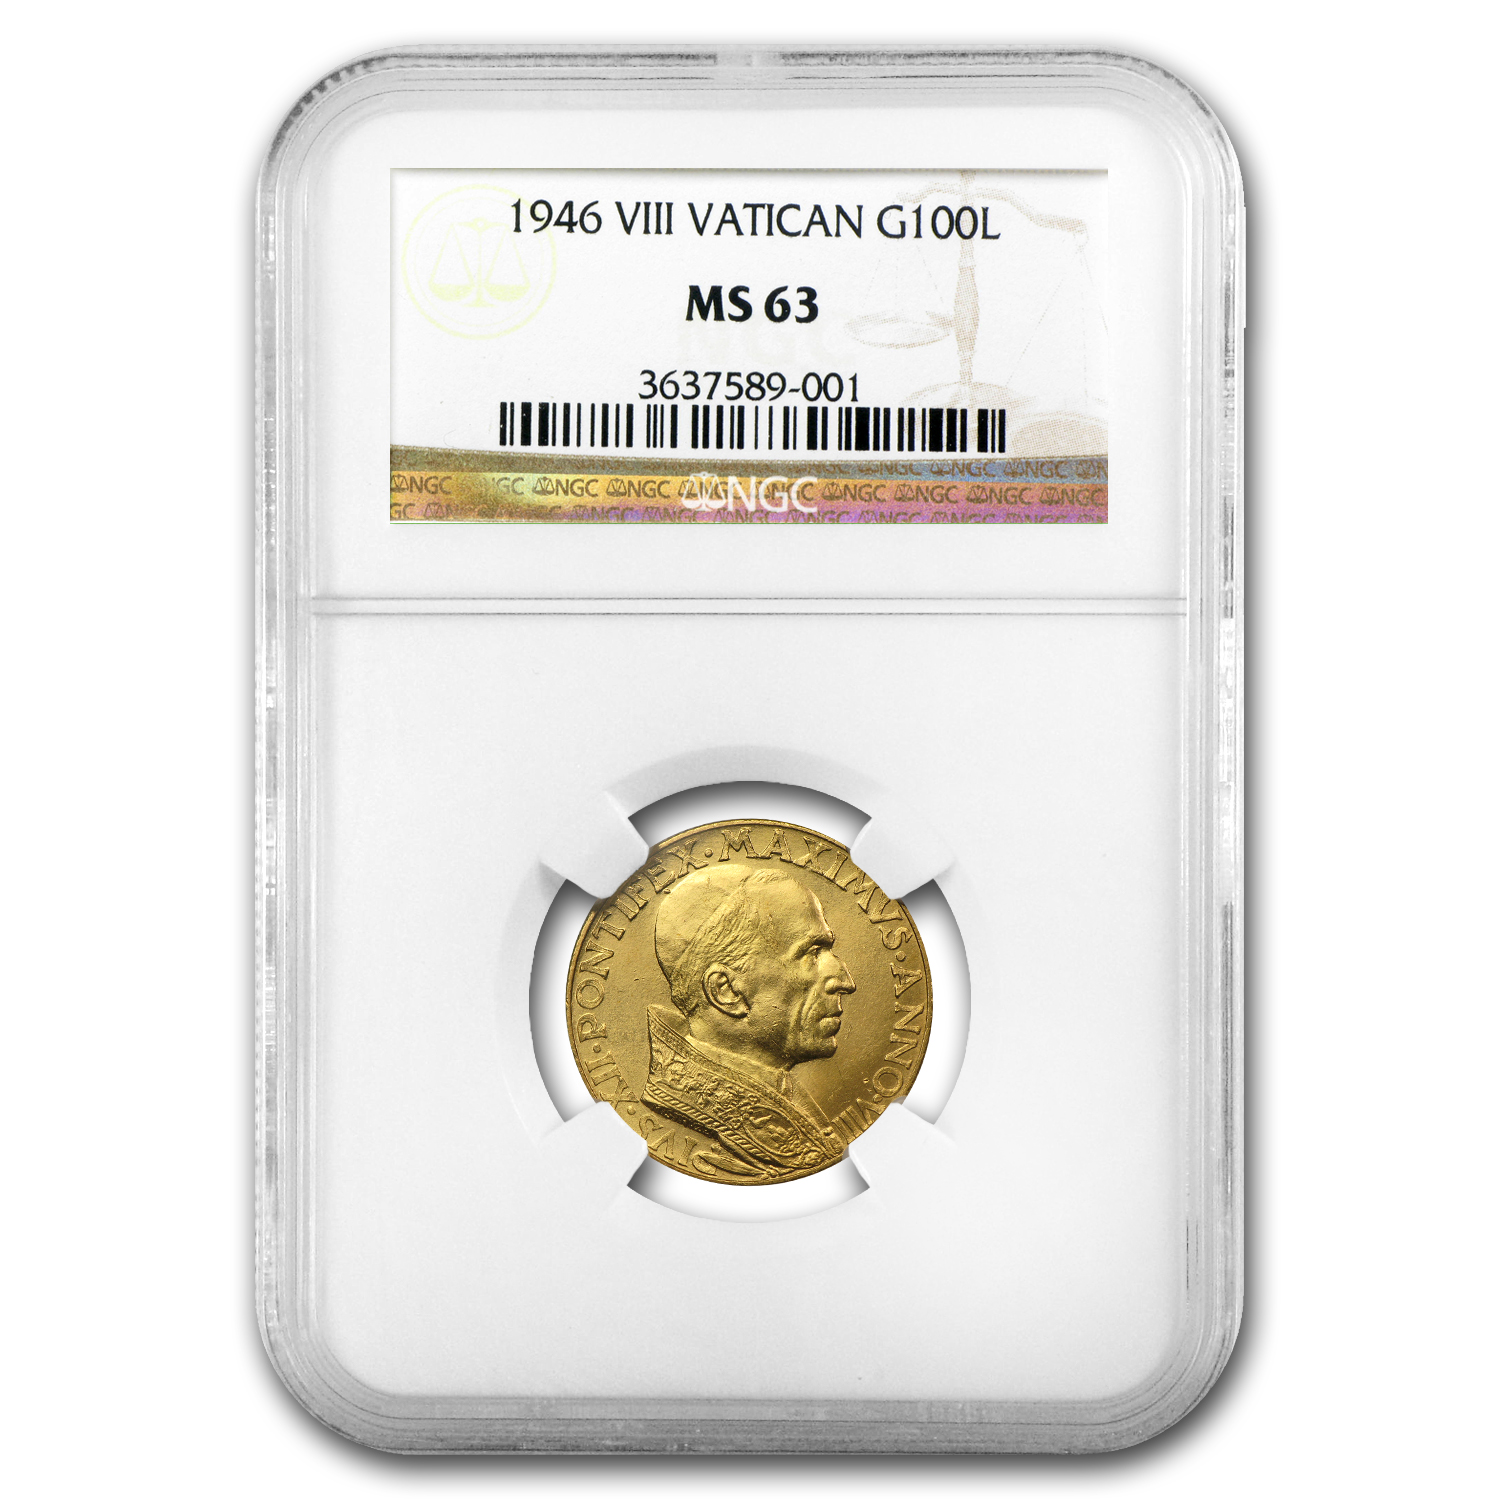 1946 Vatican City Gold 100 Lire Pope Pius XII MS-63 NGC